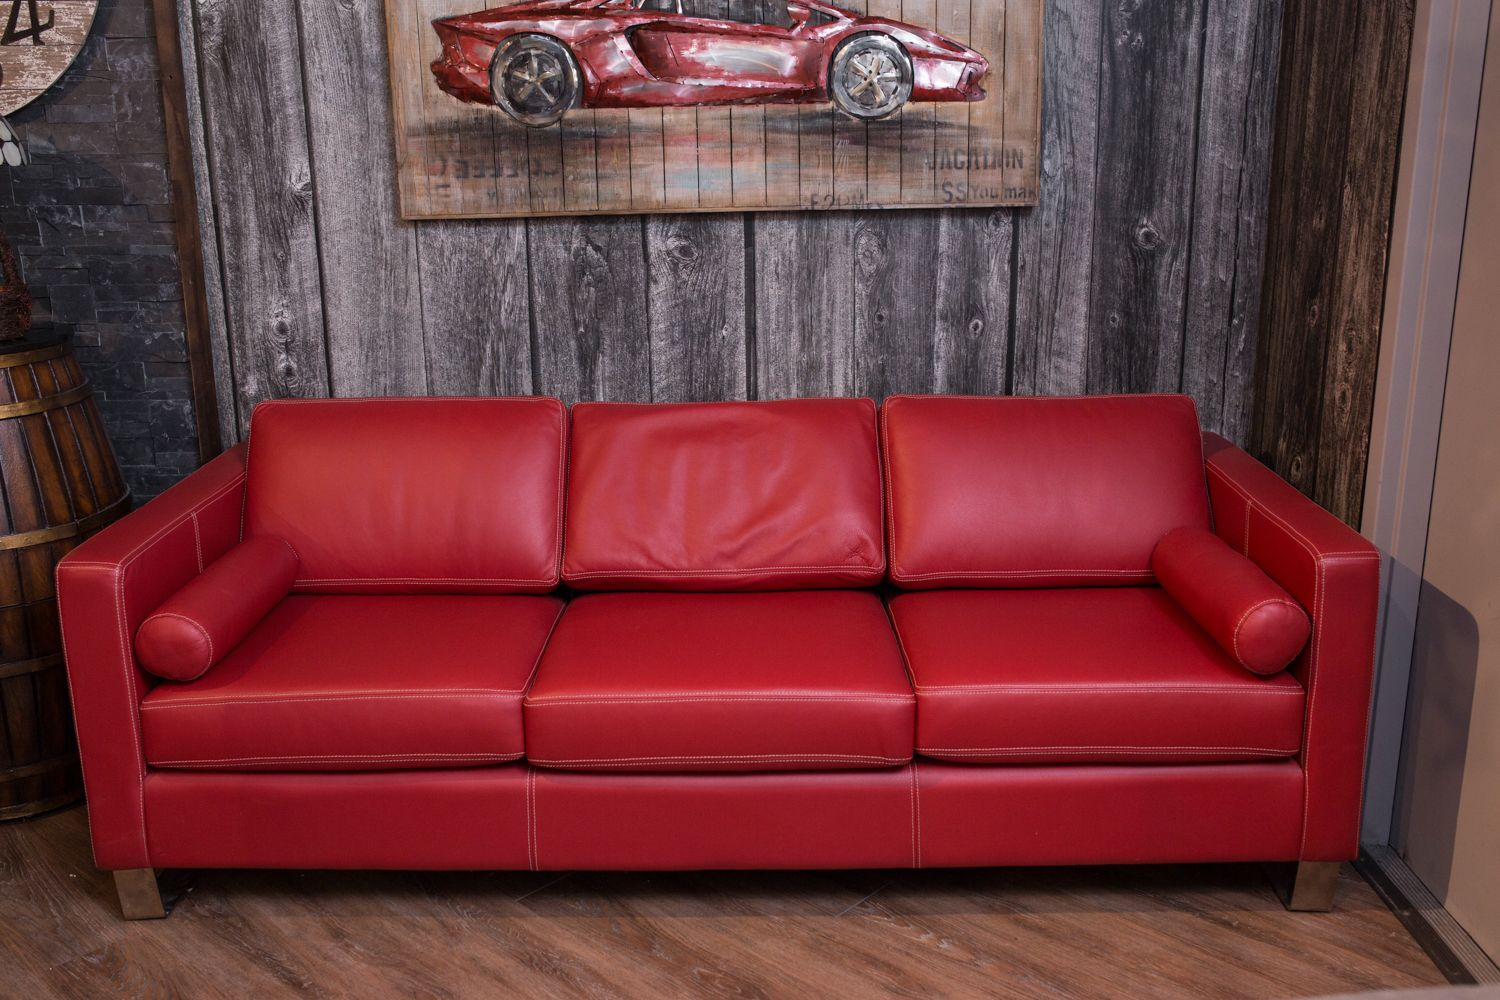 Best Leather Treatment For Couches